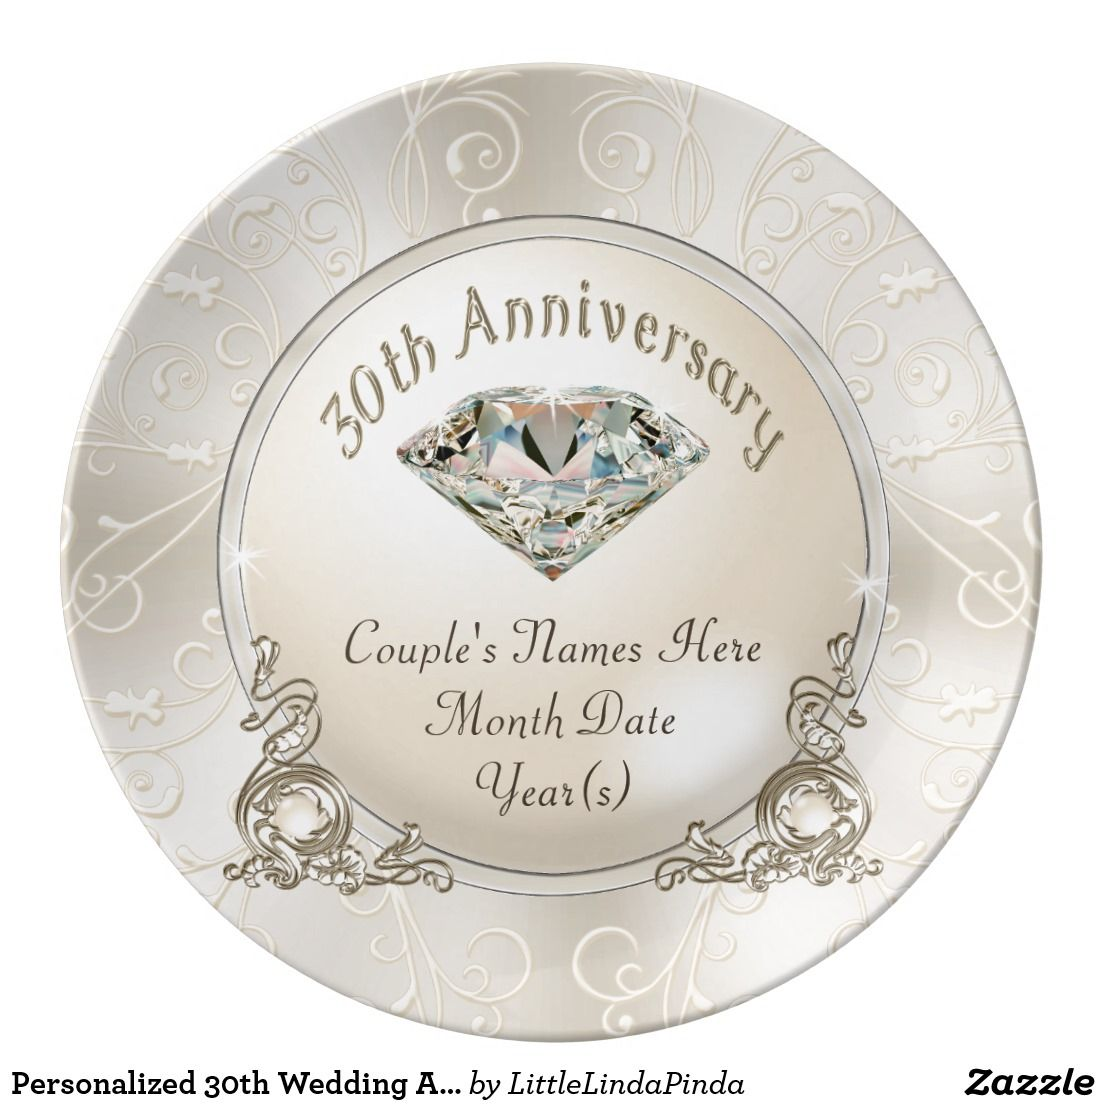 Personalized 30th Wedding Anniversary Gifts Porcelain Plate Zazzle Com 30th Wedding Anniversary Gift Anniversary Gifts 30th Wedding Anniversary